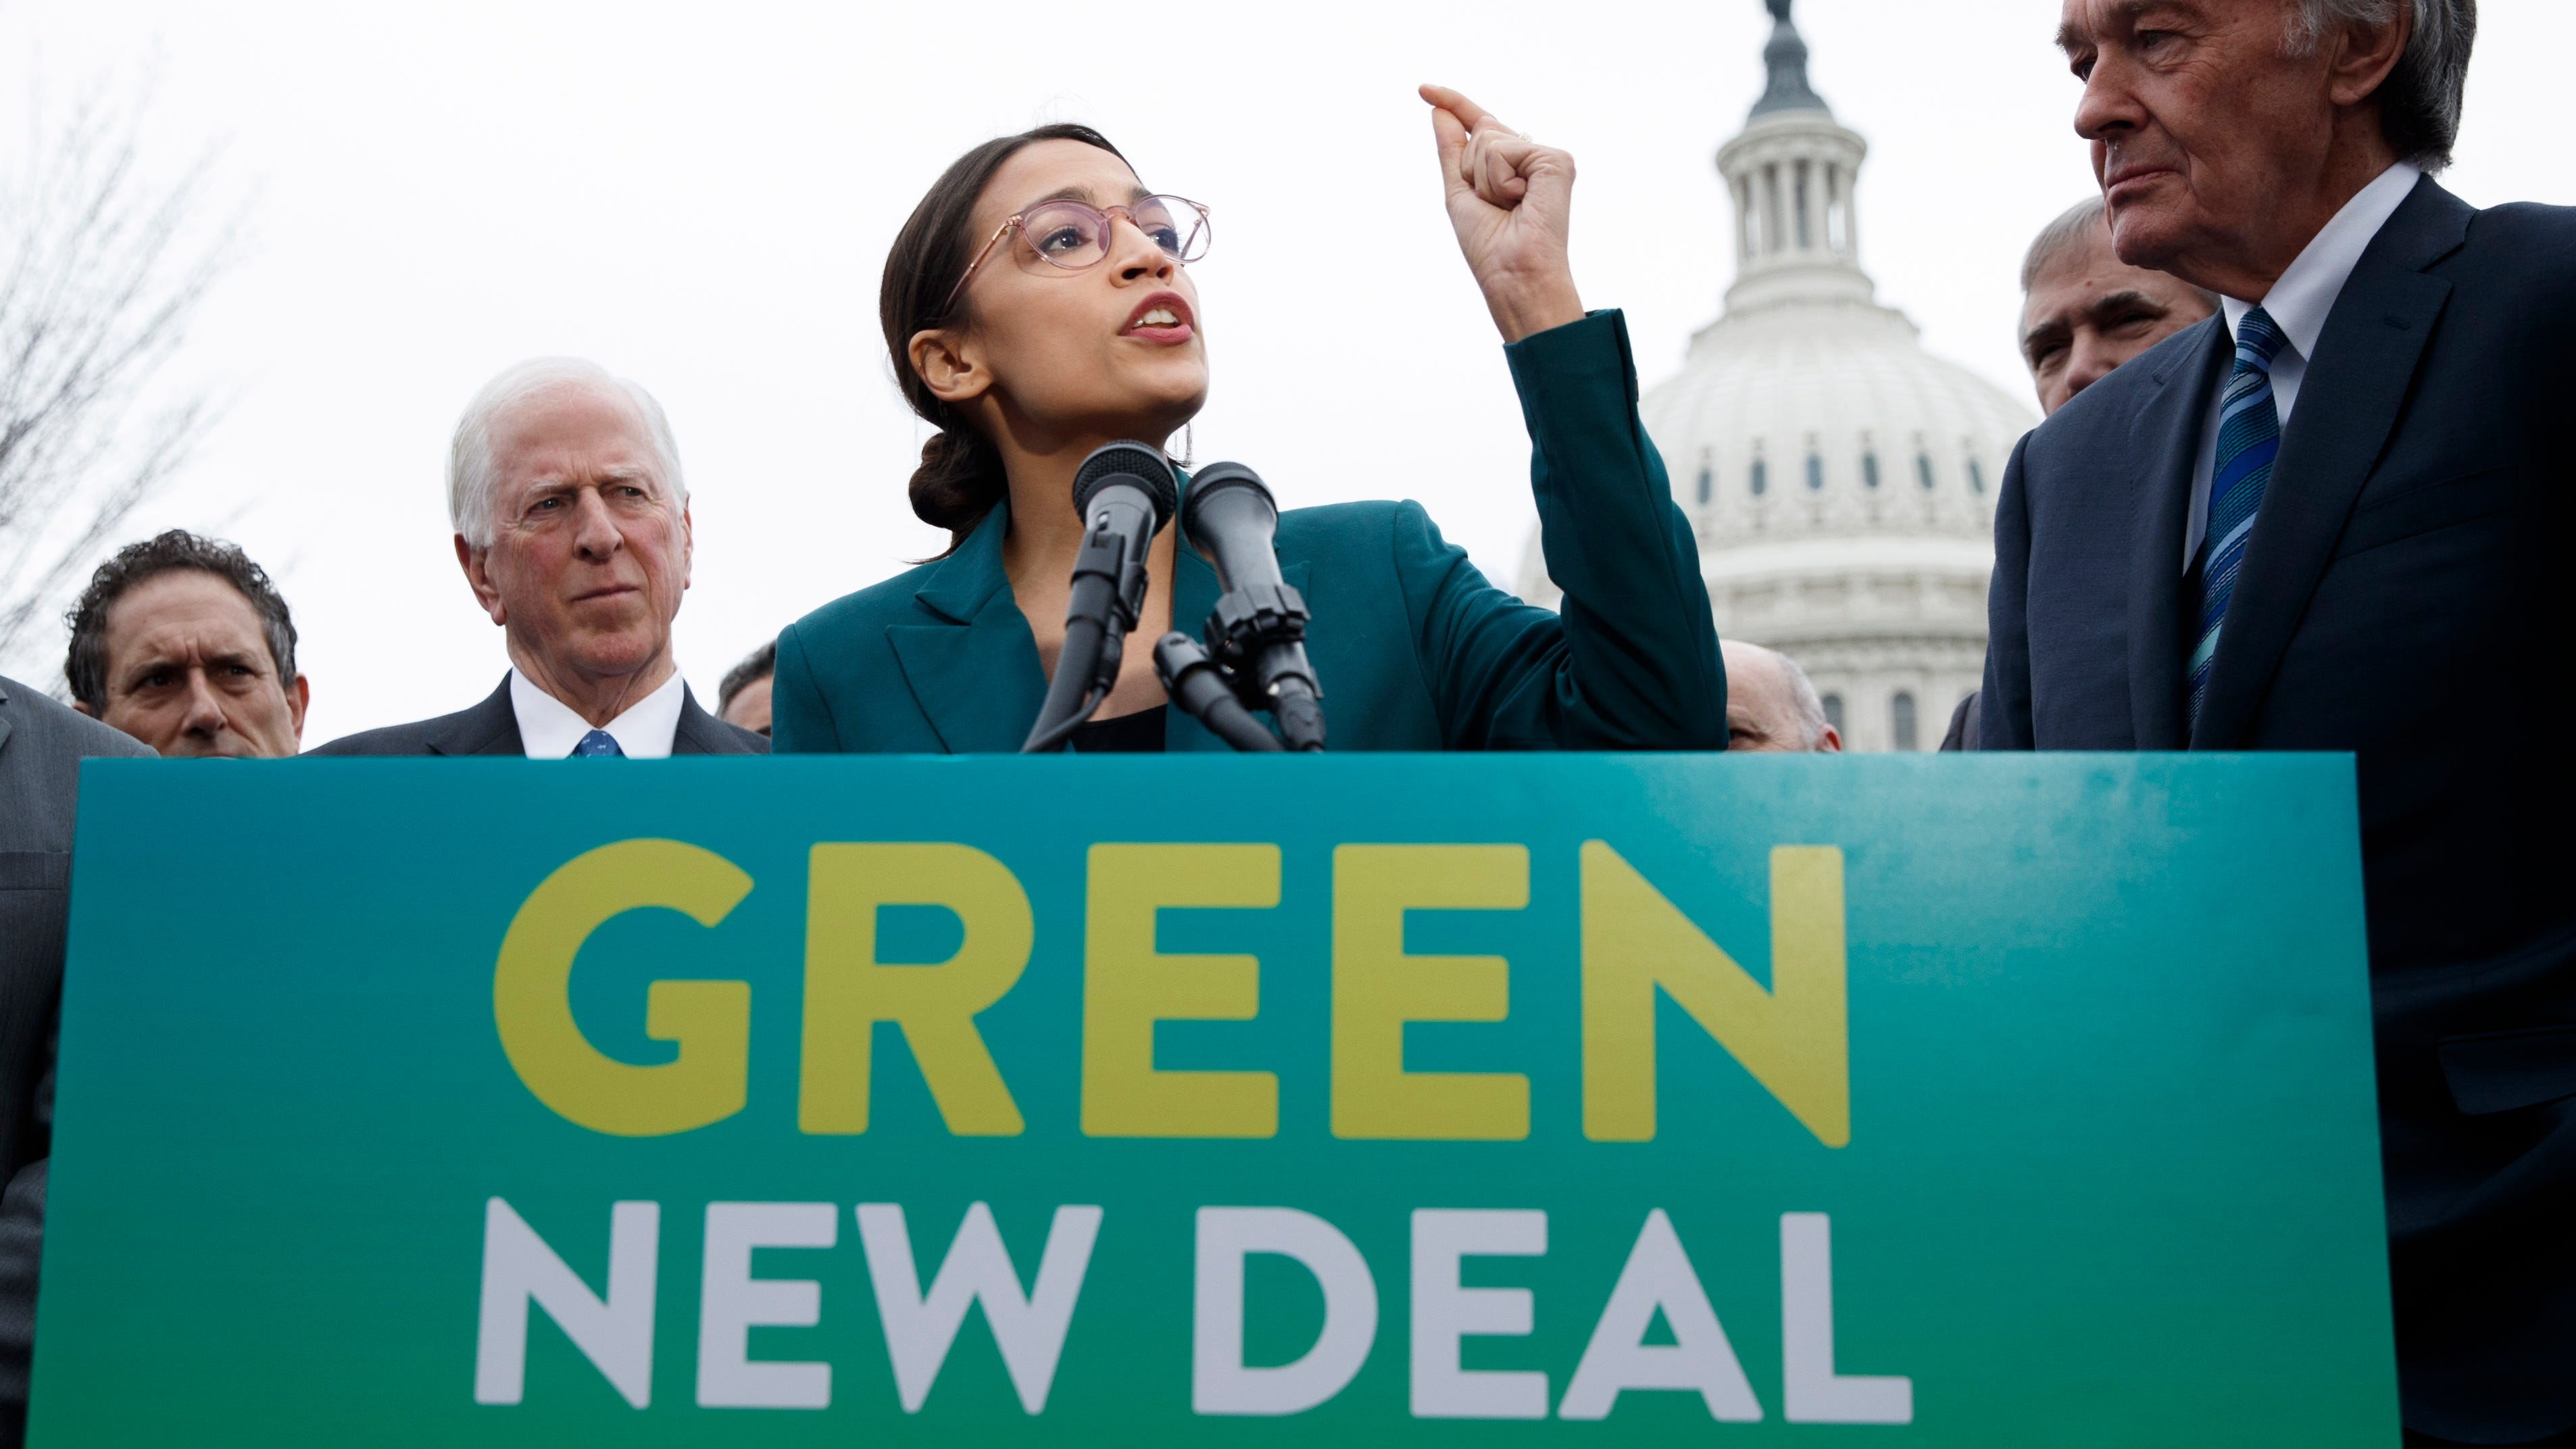 Rep. Alexandria Ocasio-Cortez, D-N.Y., with Sen. Ed Markey, D-Mass.,  delivers remarks on the Green New Deal resolution during a press conference on Capitol Hill in Washington, on Feb. 7, 2019.